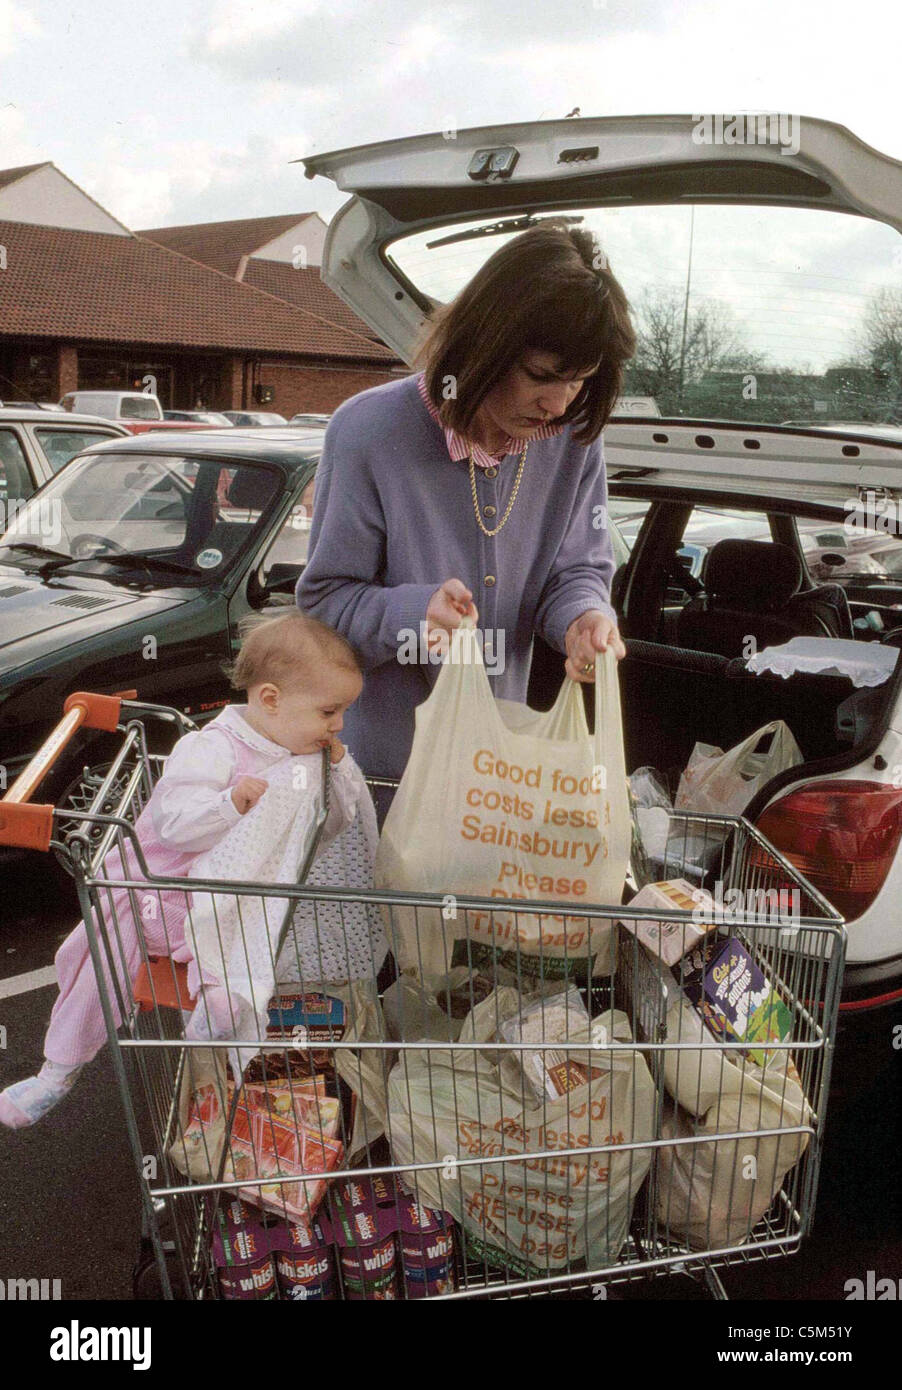 mother placing groceries into the boot of her car with toddler in trolley seat - Stock Image